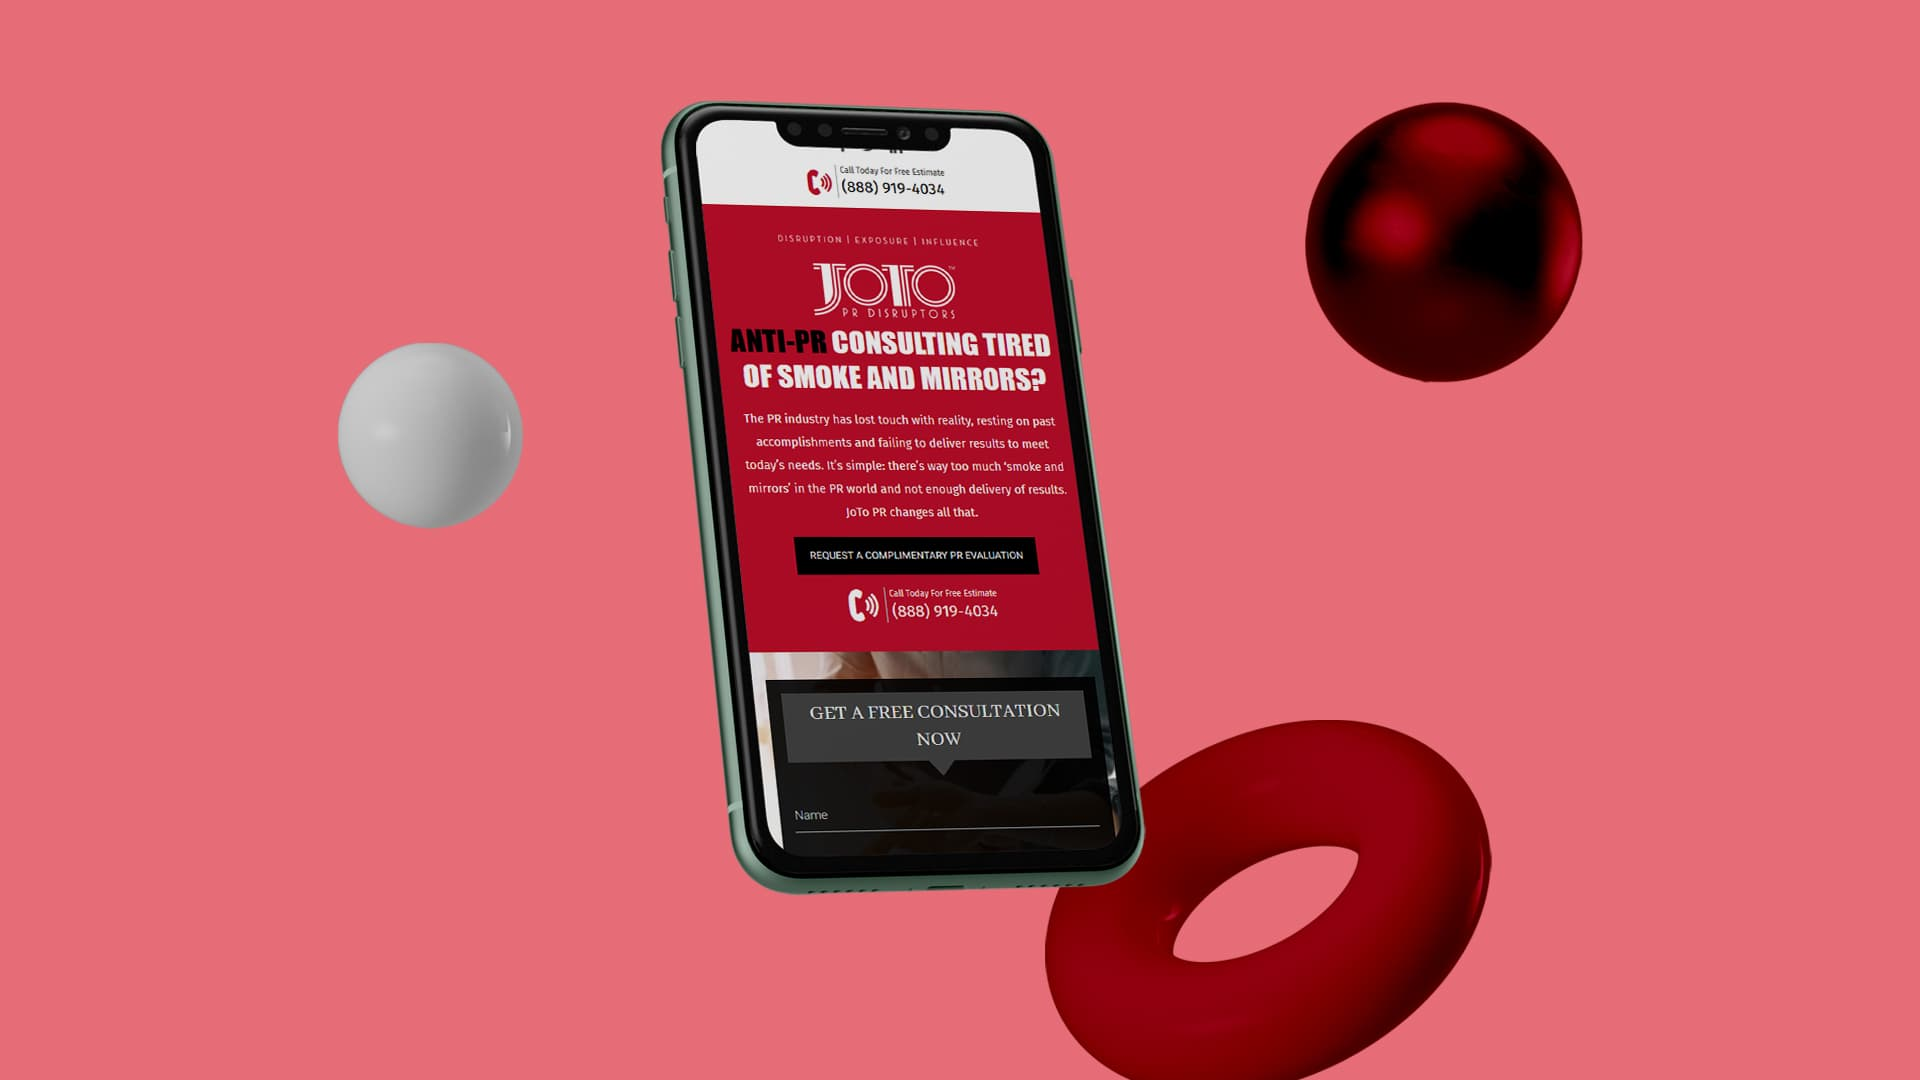 SEO & PPC Business-to-Business: Joto Ventures, in Mobile